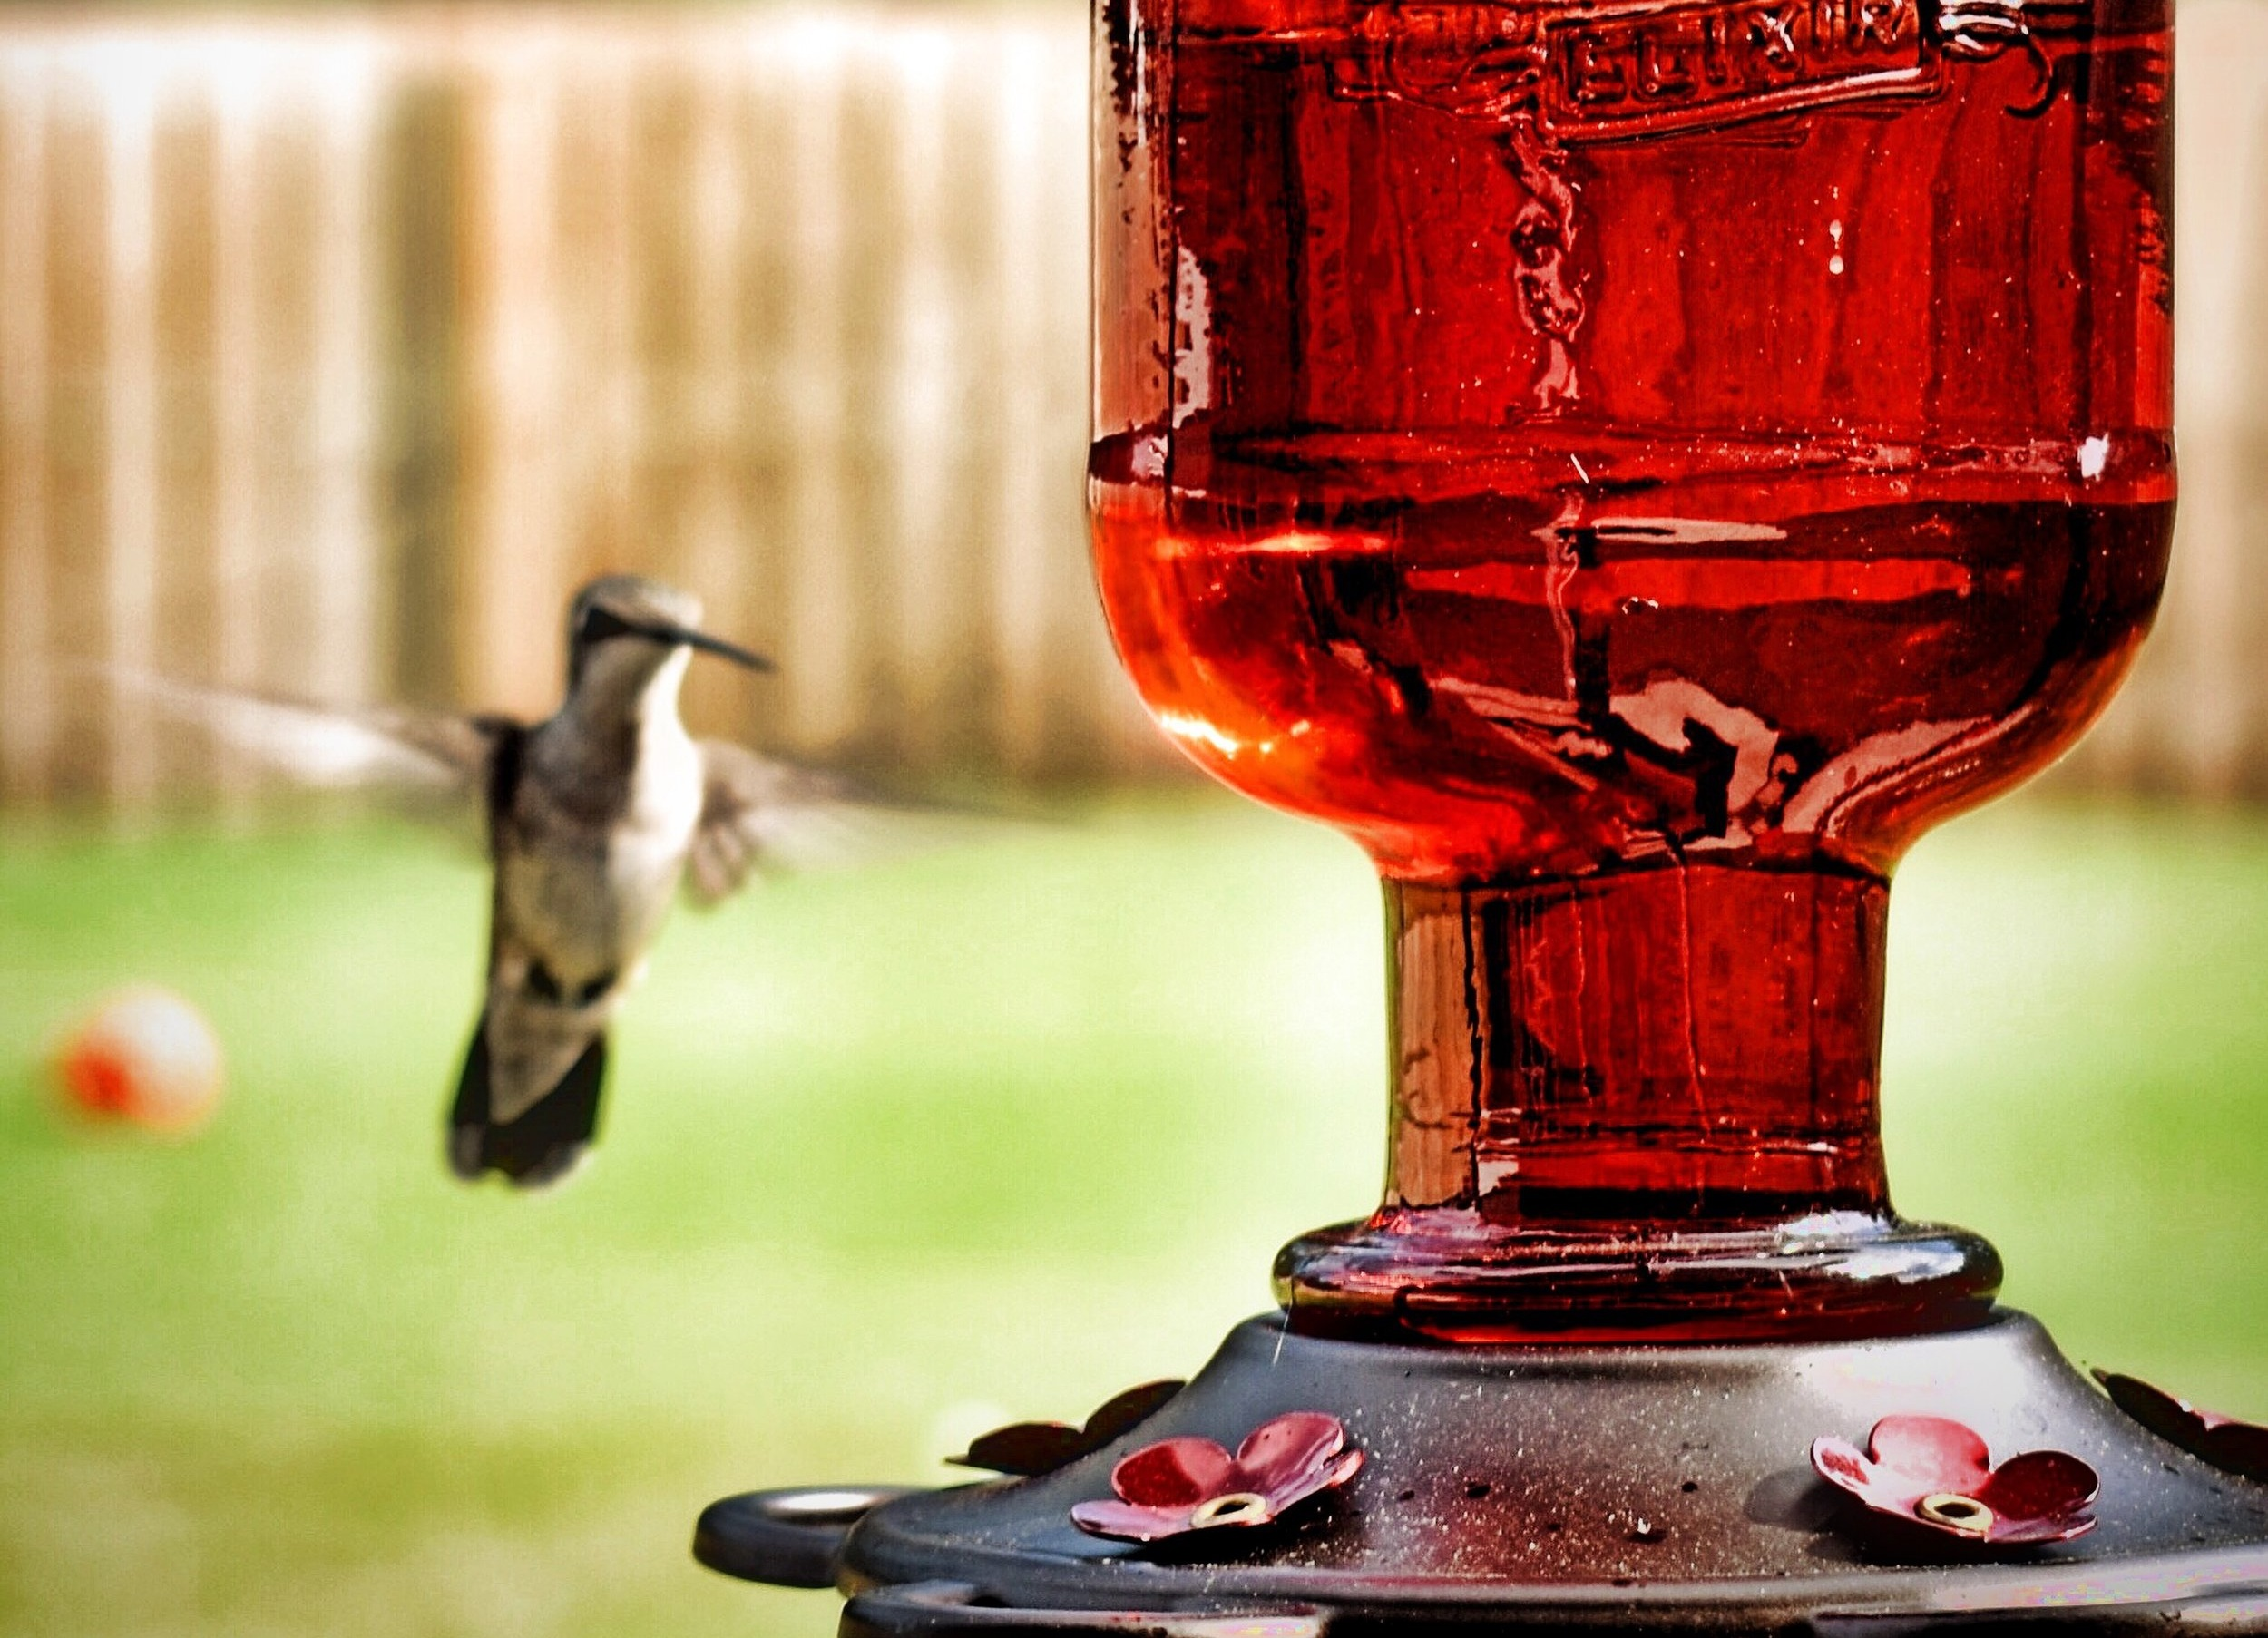 Best Hummingbird Feeders   Disclaimer: There are affiliate links in this post. This means that at no cost to you, I will receive a small commission if you purchase through my link. I will only ever promote the products and services that I trust and 100% recommend. You may read my full  disclosure policy  for more information. Thanks for supporting my business in this way.